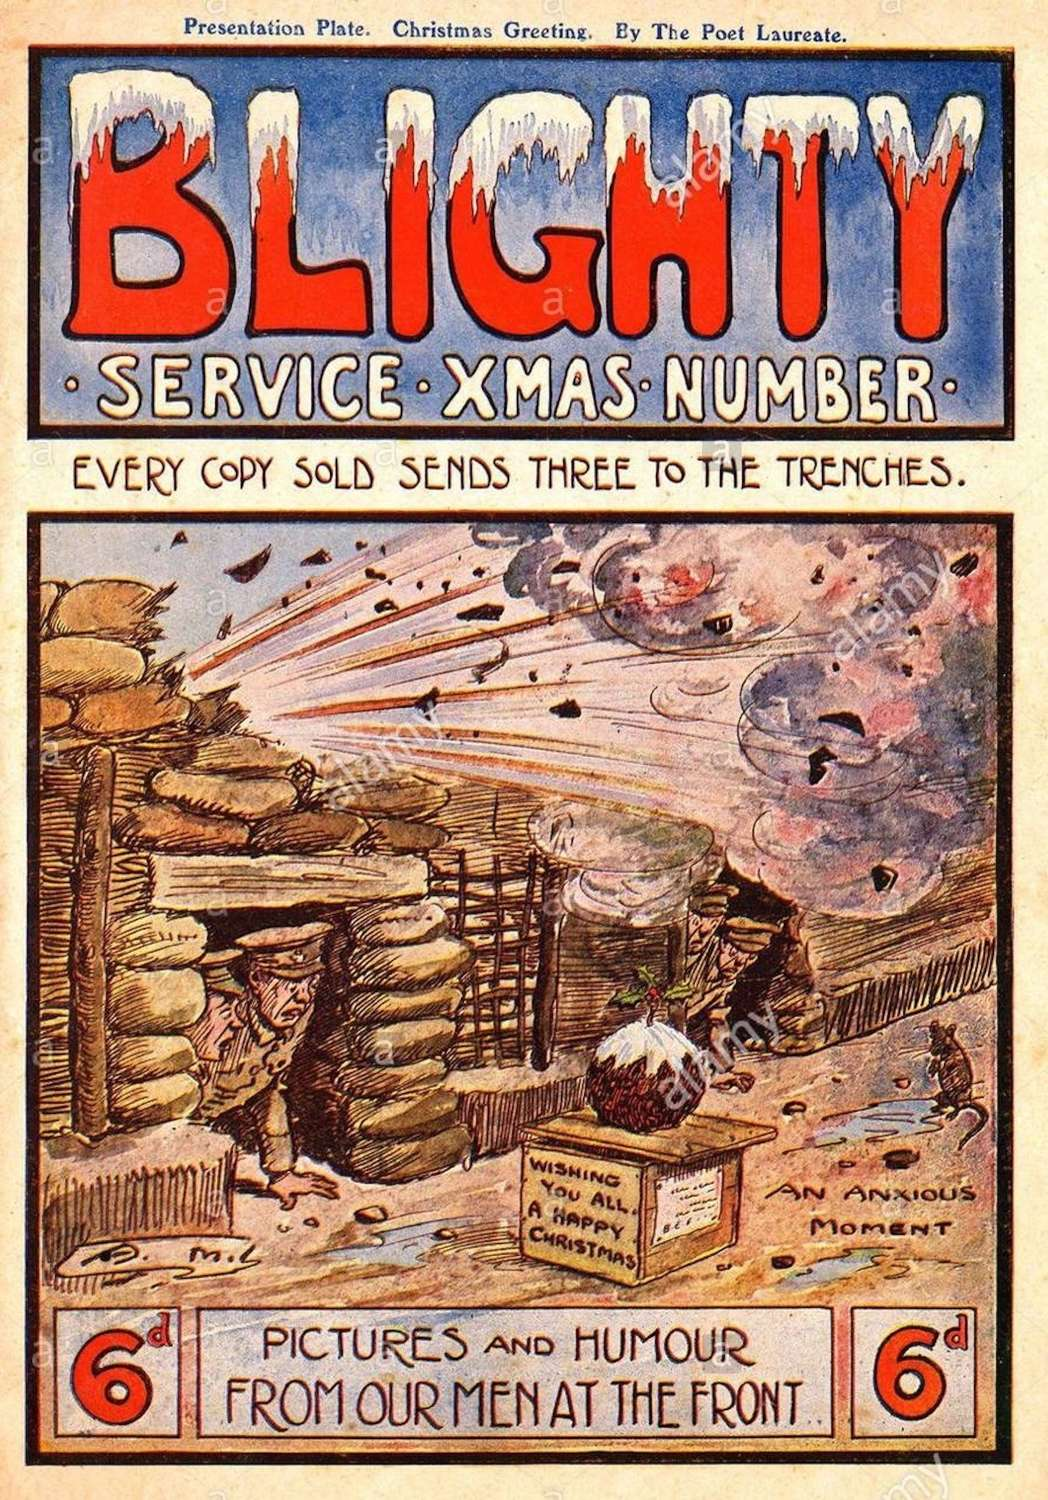 Dear Old Blighty Christmas Period Daily Briefing Updates